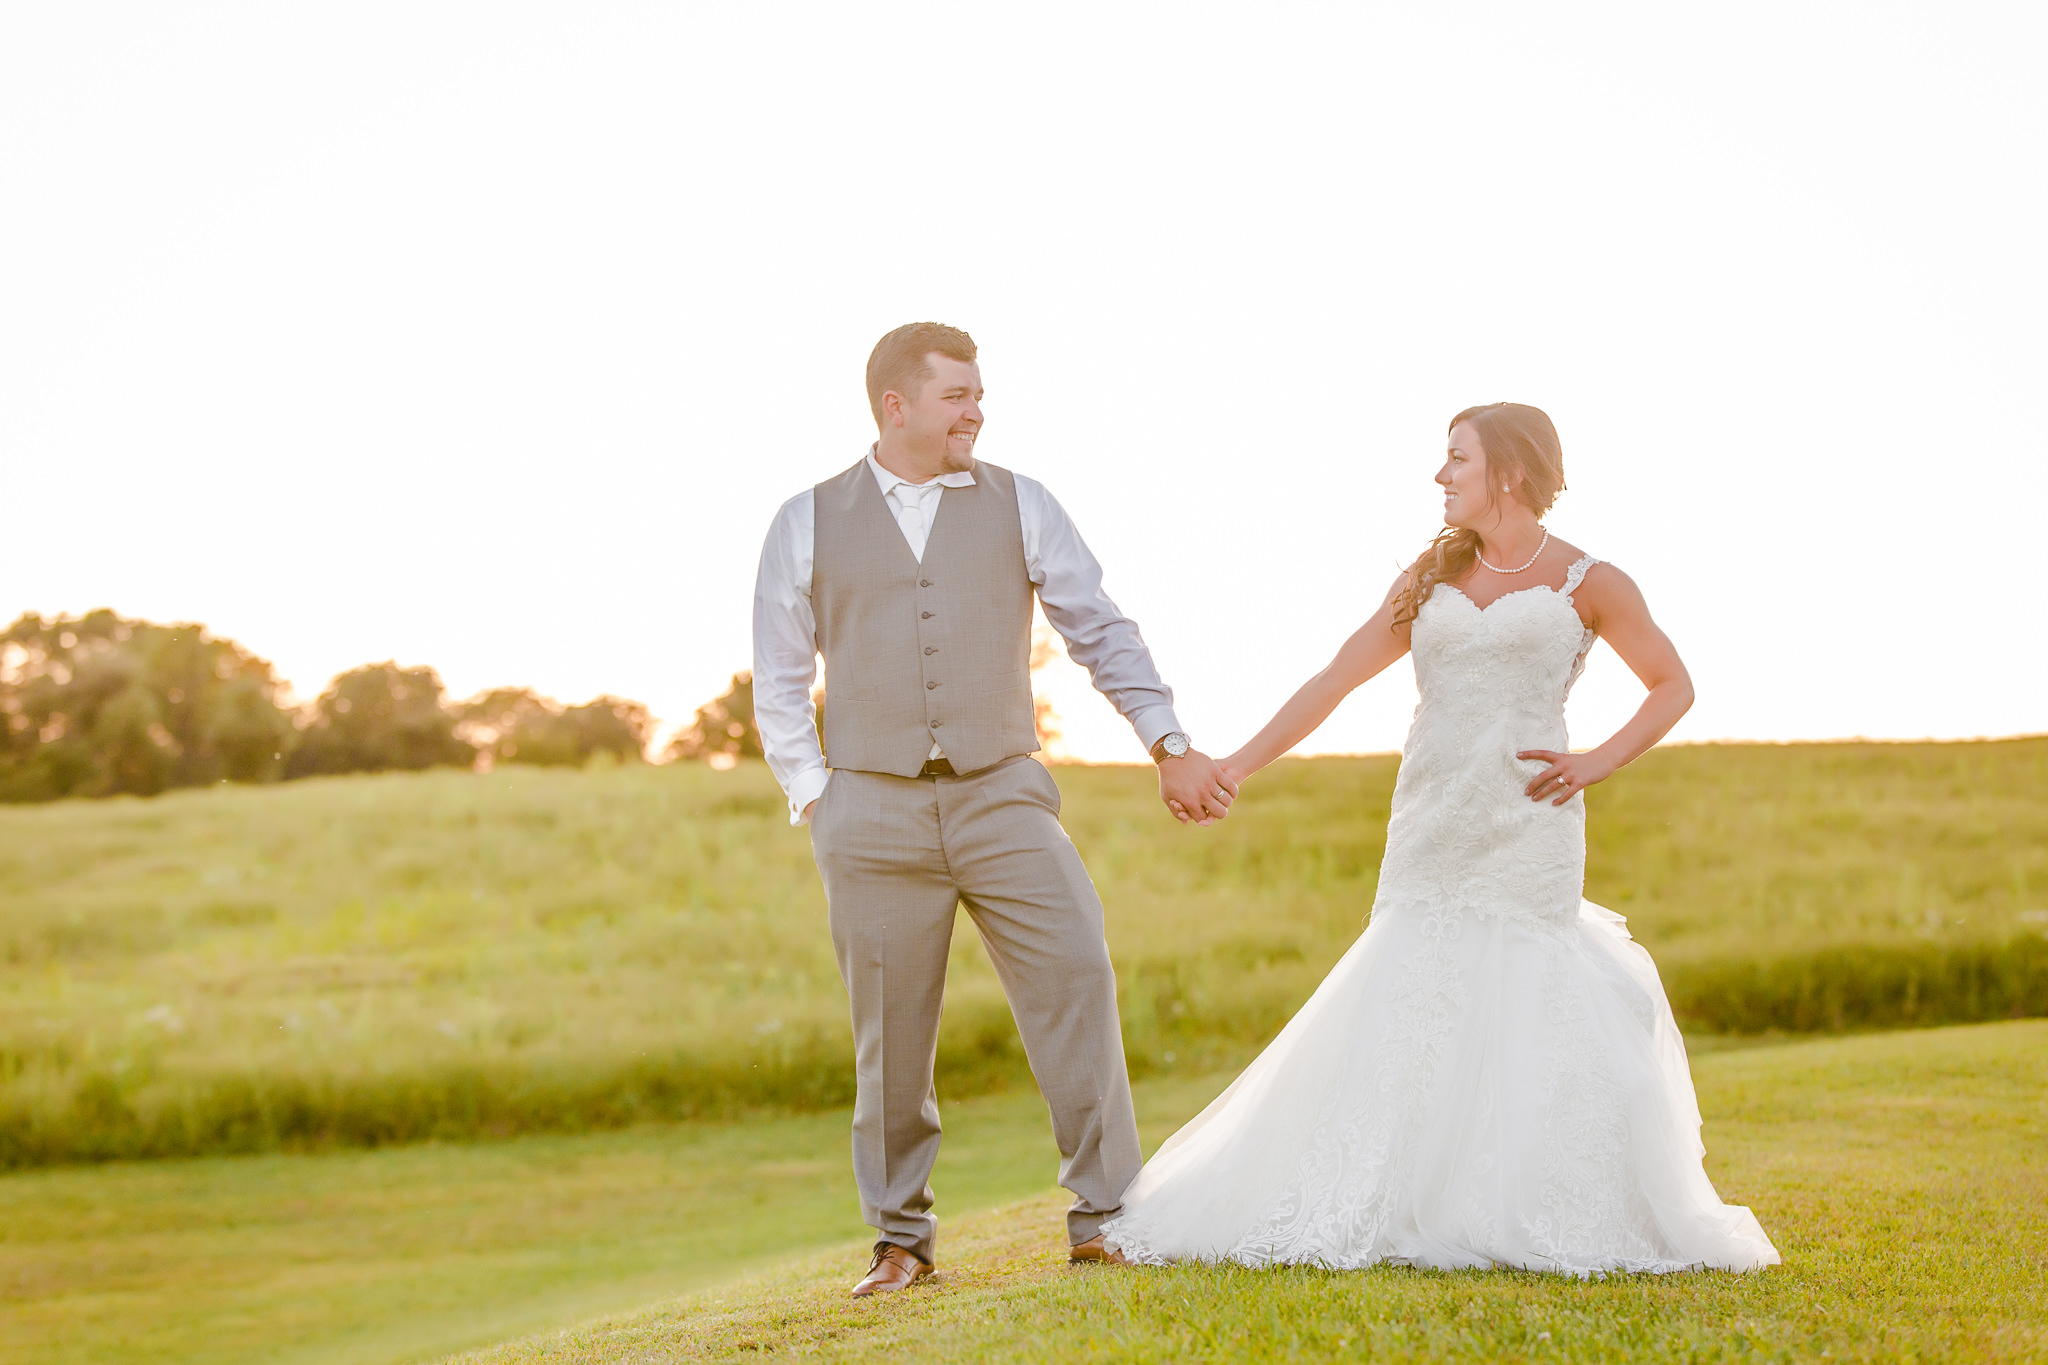 Bride and groom pose during golden hour at the White Barn